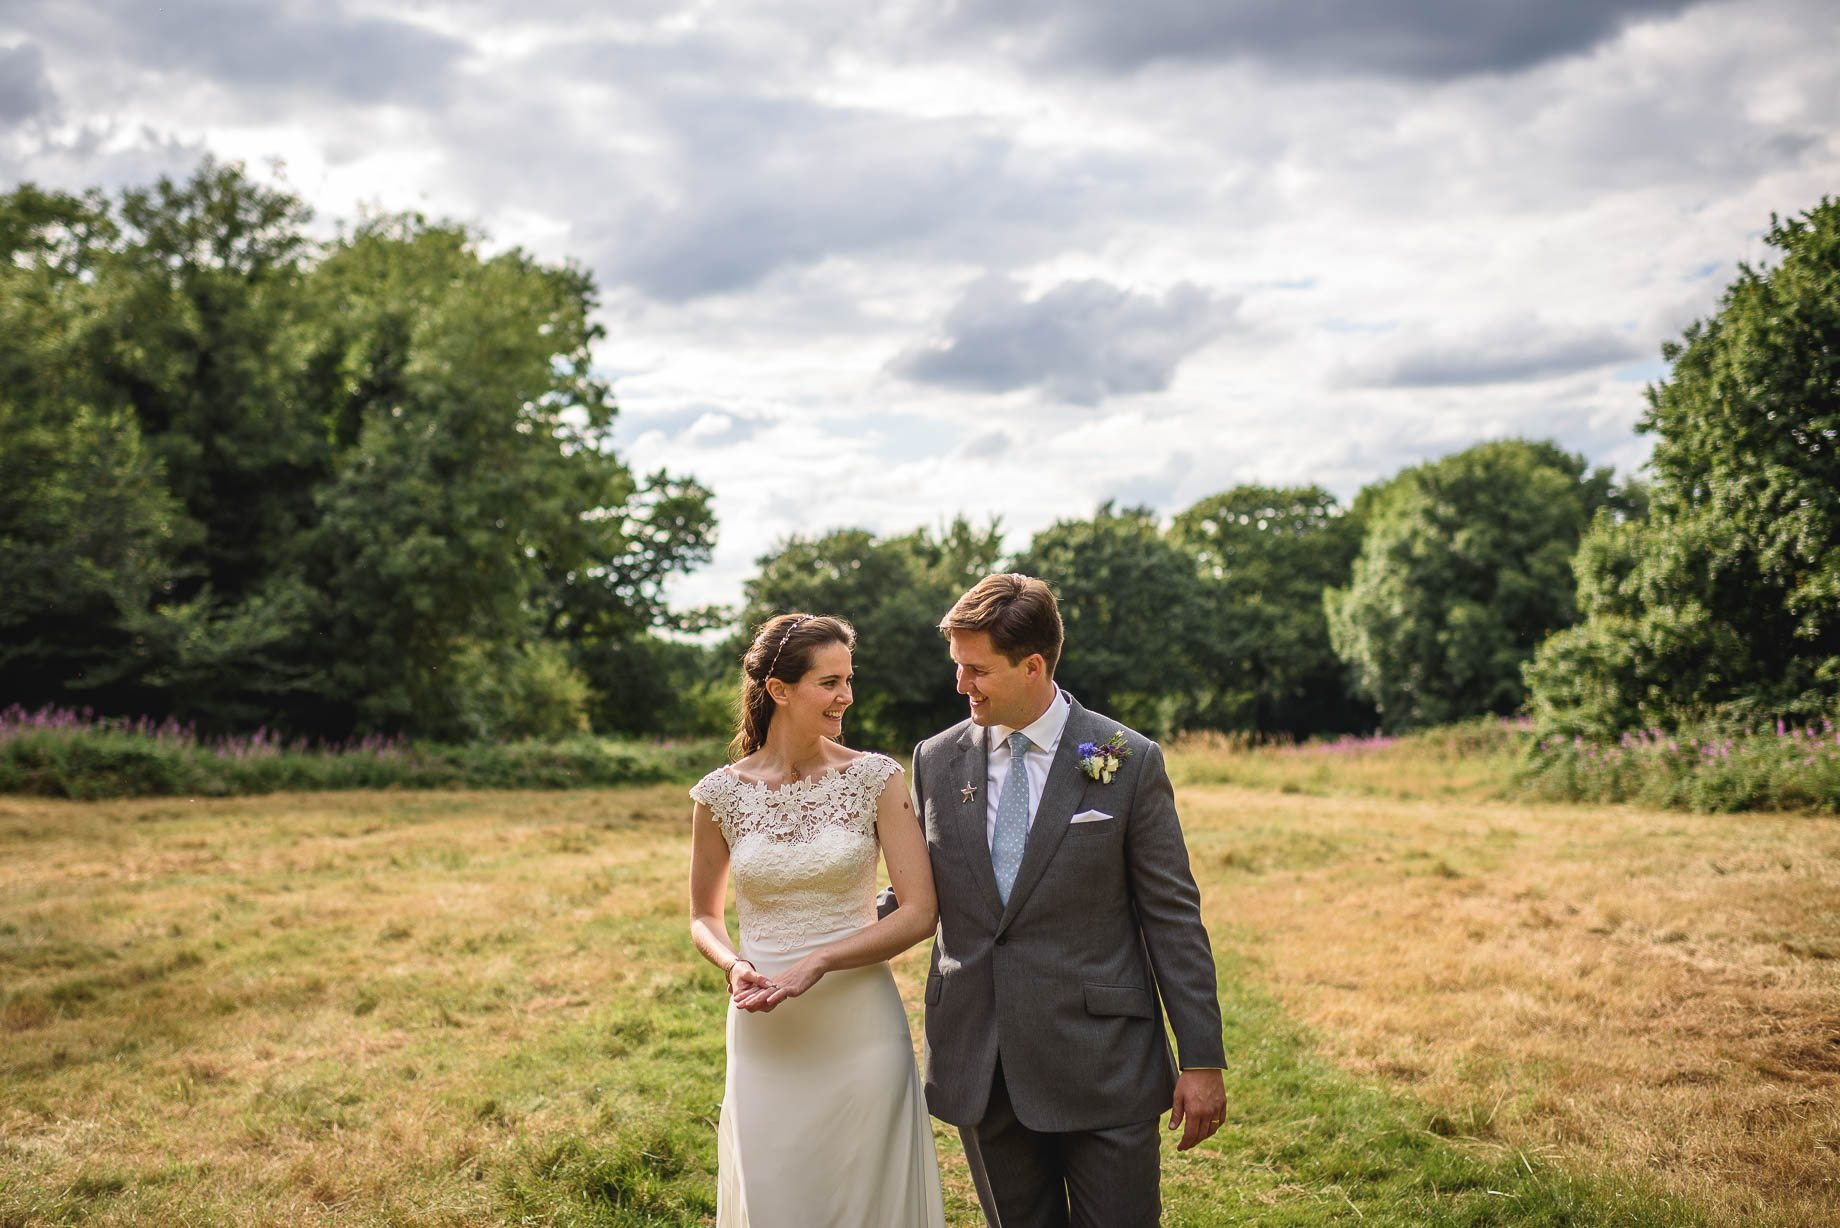 London wedding photography - Claire and JW - Guy Collier Photography (108 of 153)